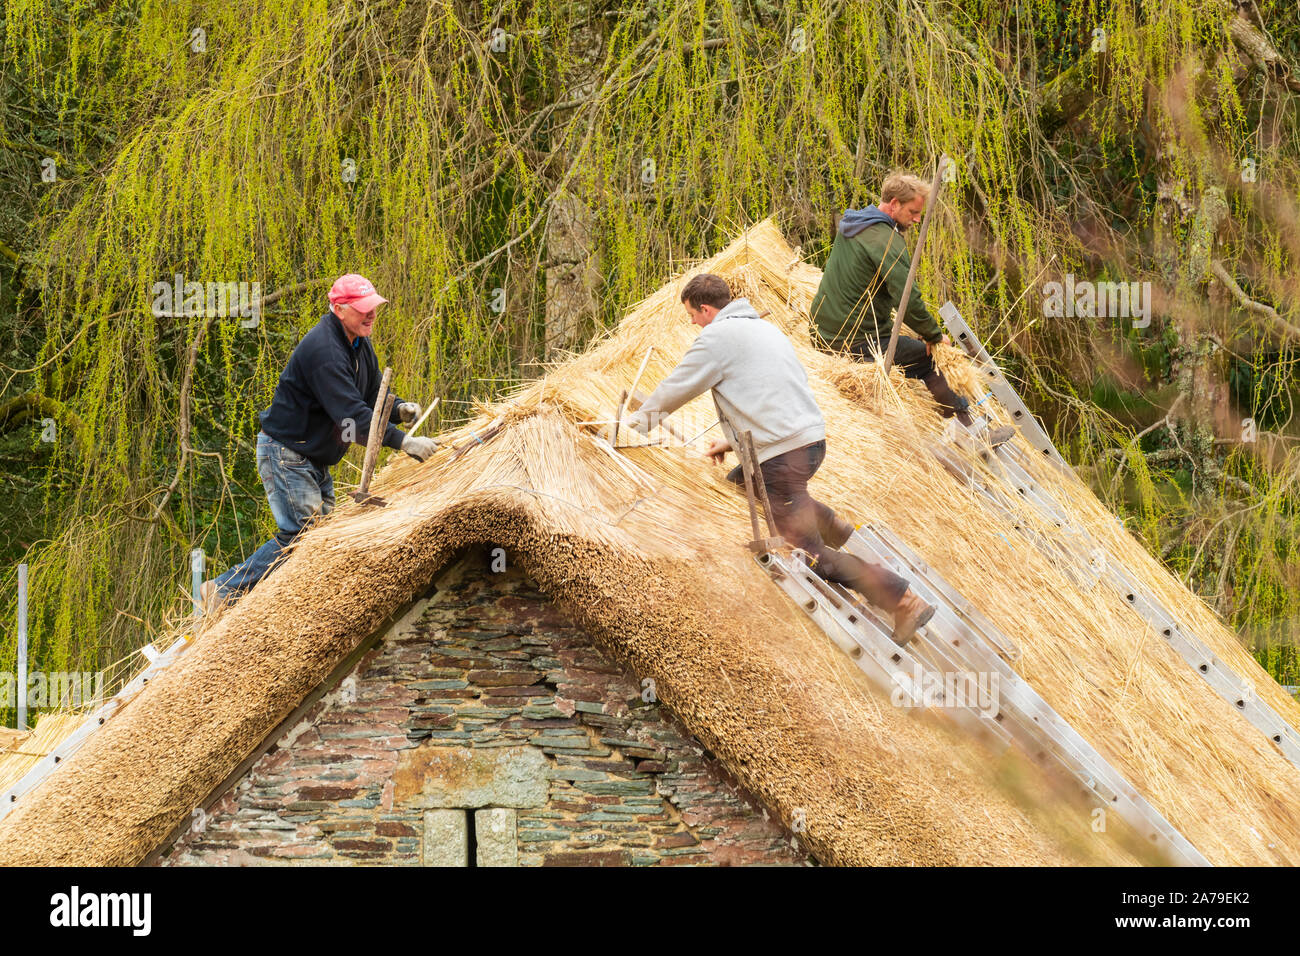 traditional-craftwork-employed-in-thatching-the-old-barn-at-the-garden-house-buckland-monachorum-devon-2A79EK2.jpg